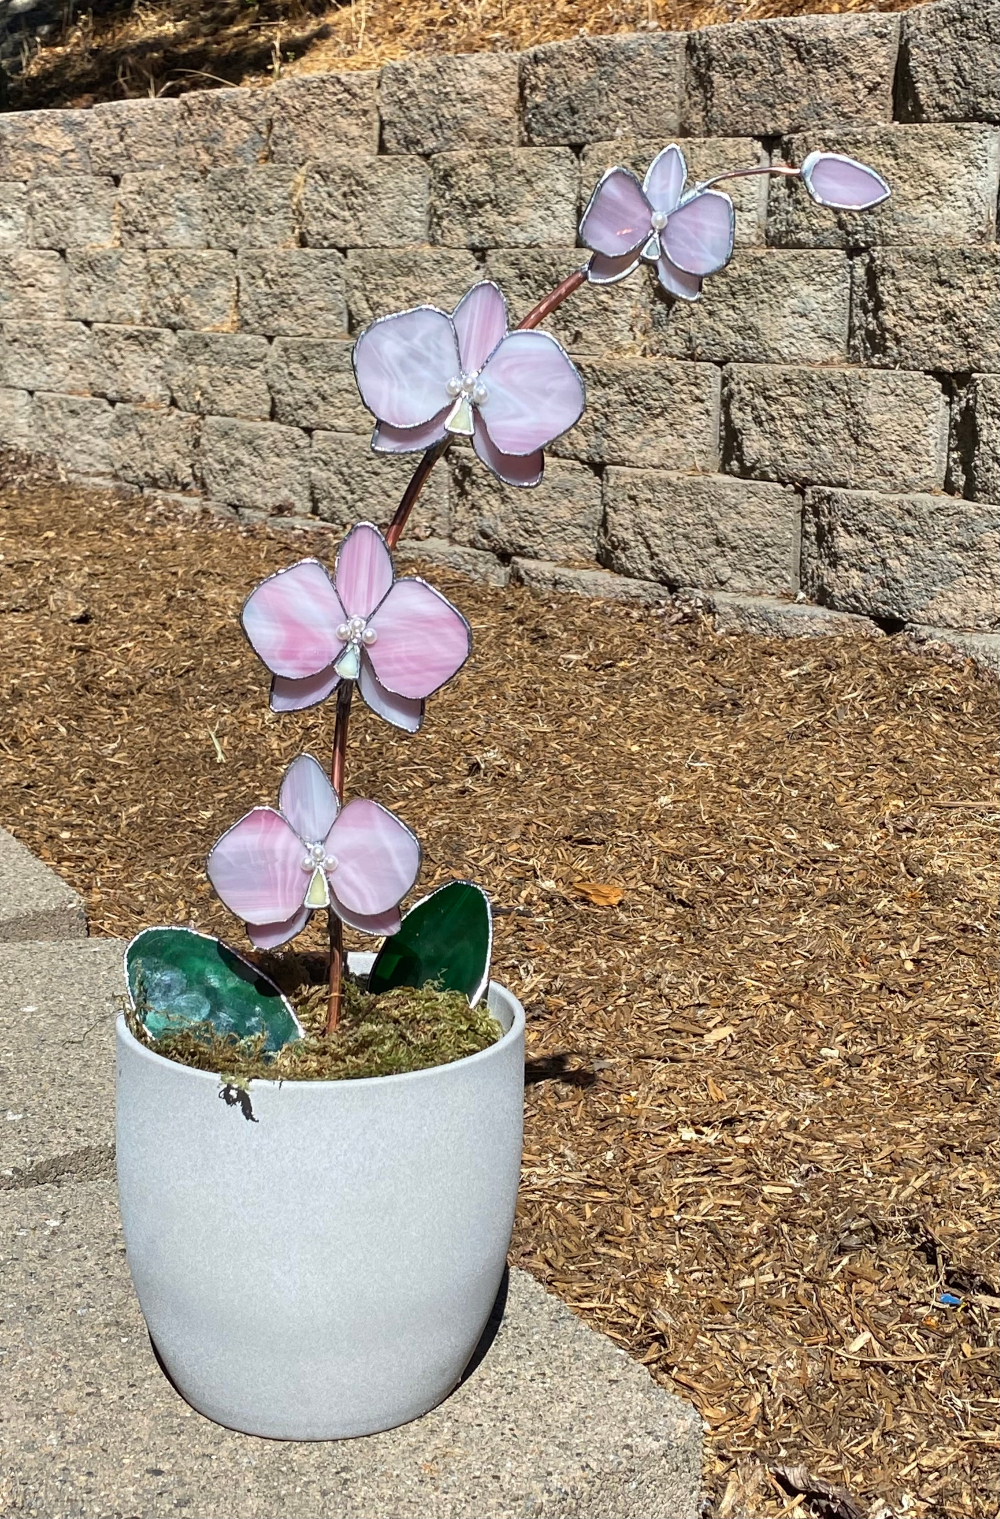 1st. Rayna Pitter, Stained glass orchids 2